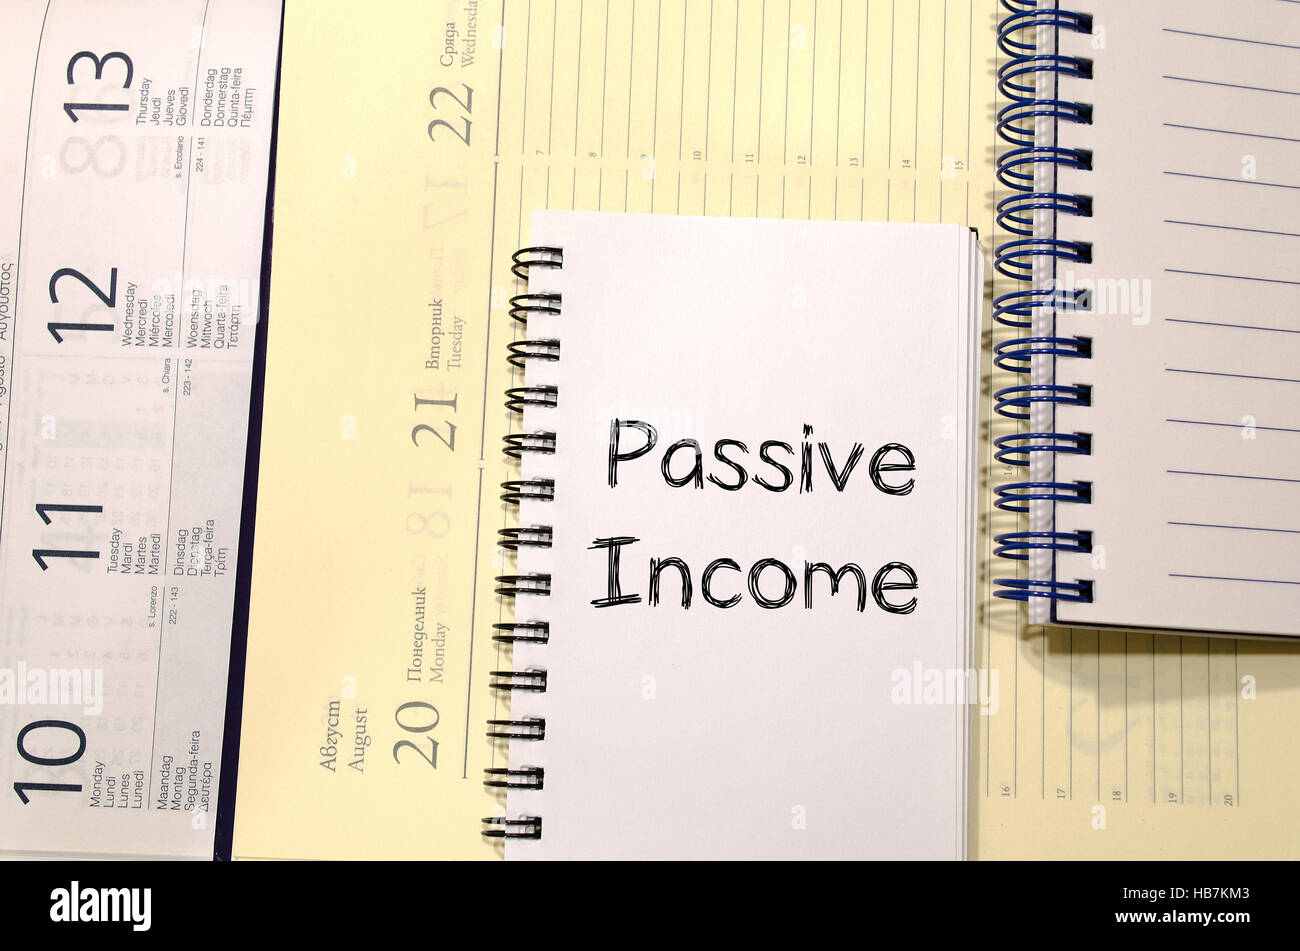 Passive income write on notebook - Stock Image